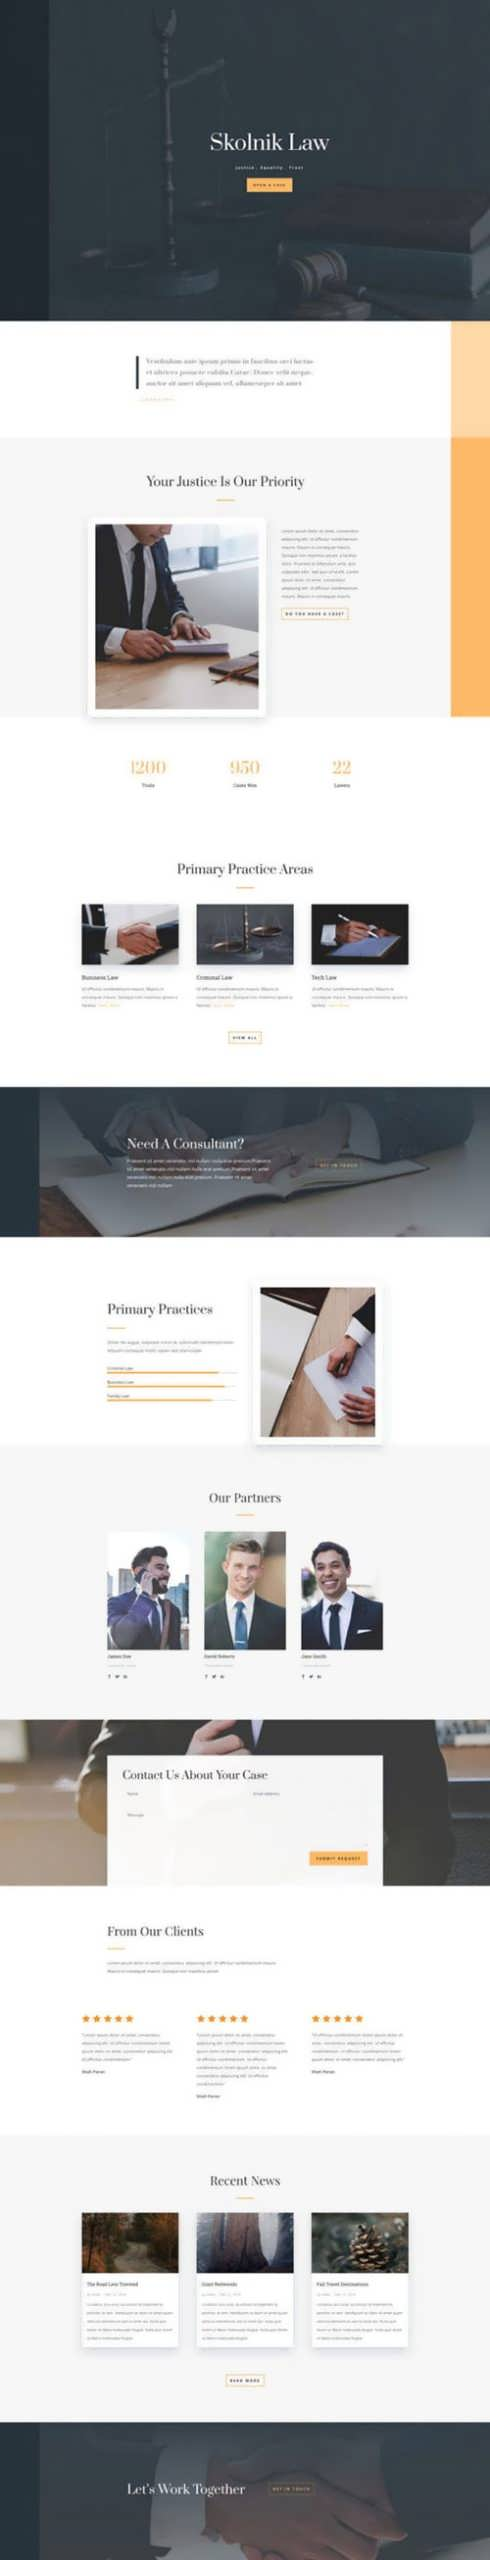 law firm landing page scaled